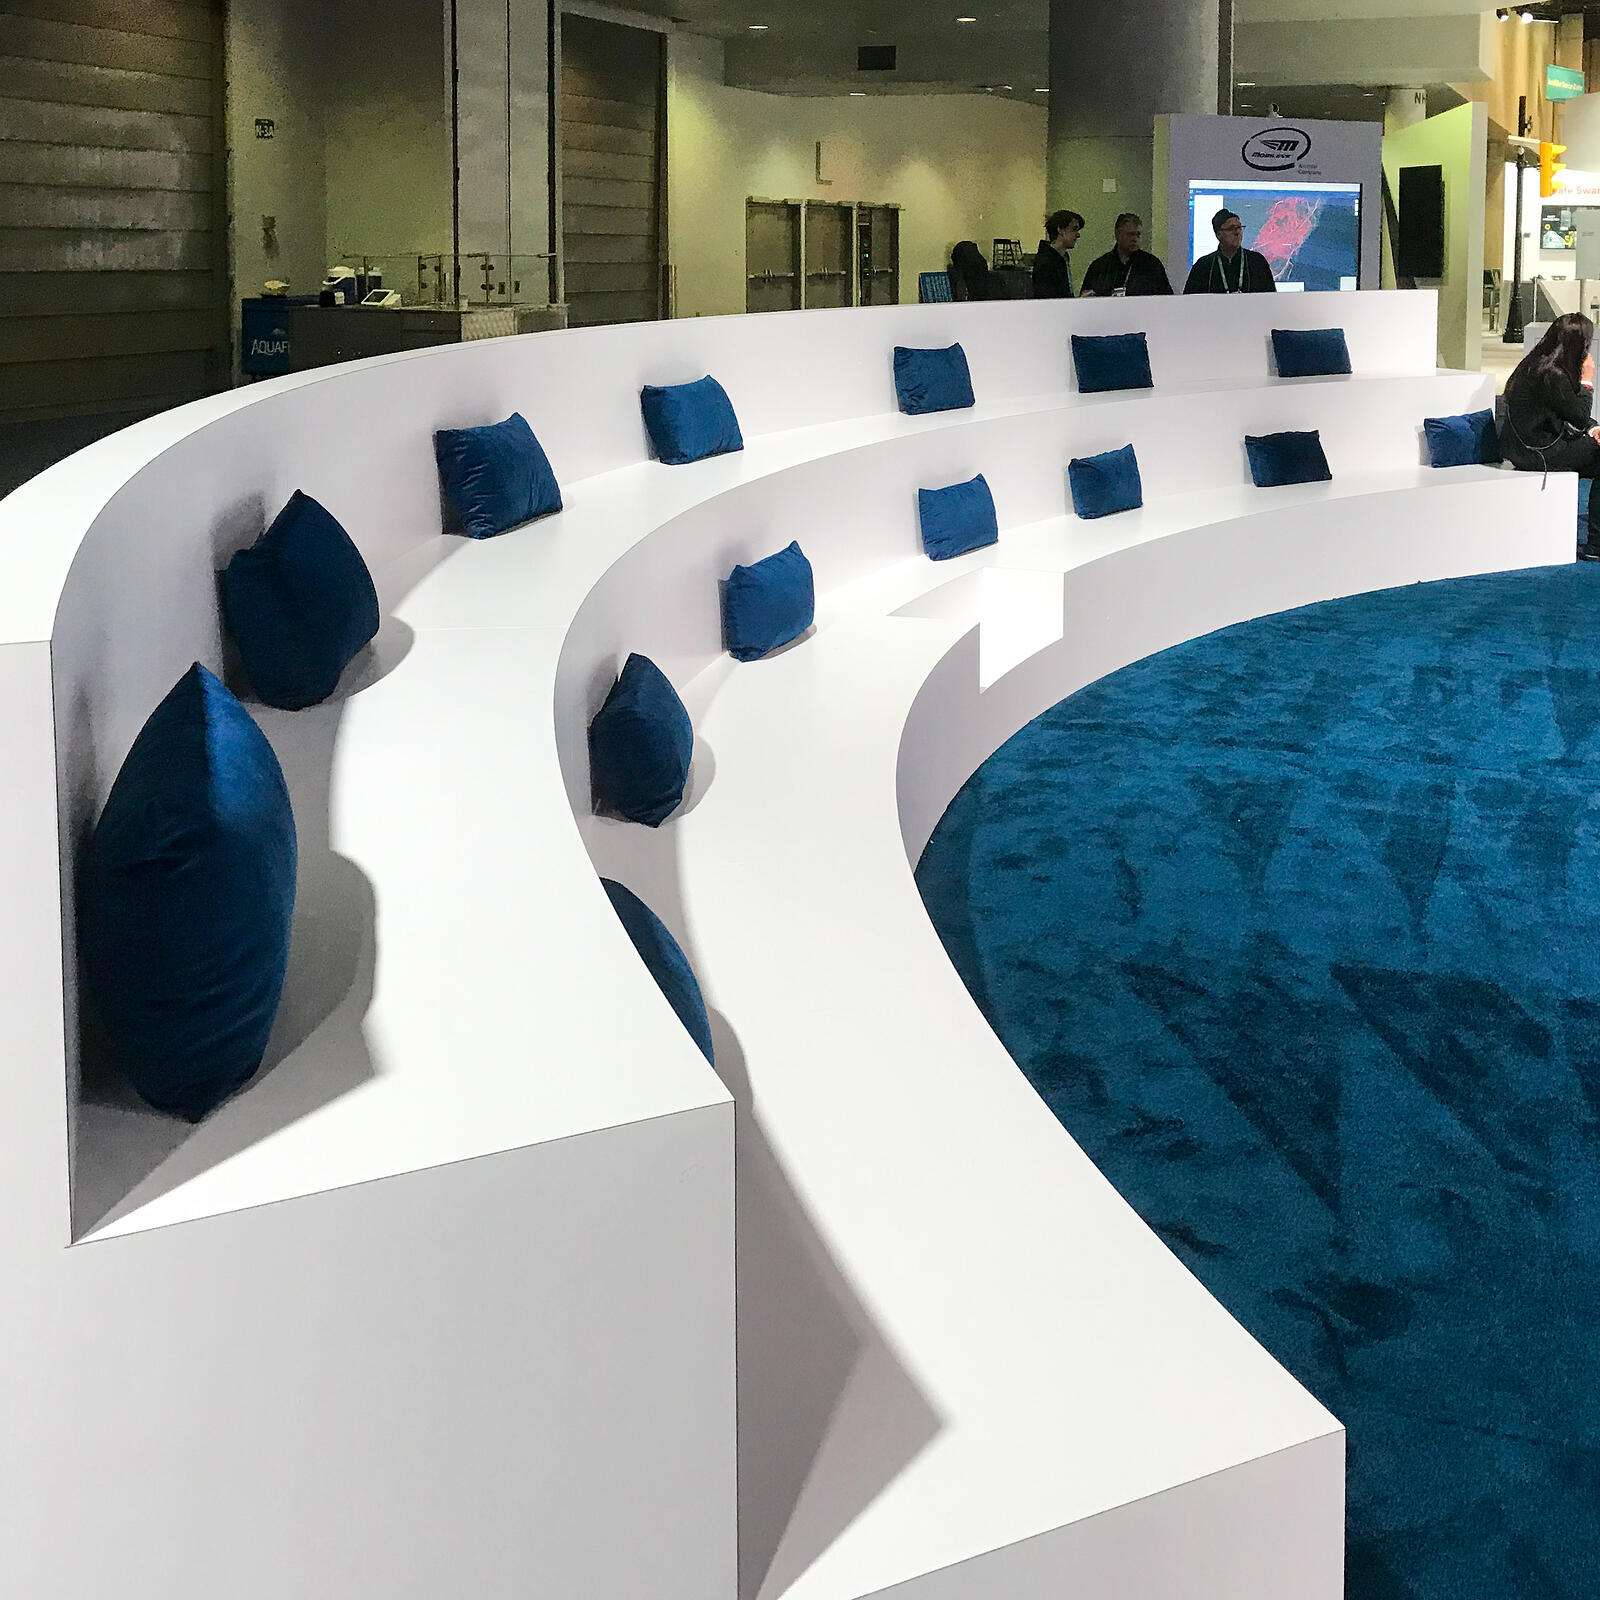 white sitting area with blue cushions to match blue floor at ces 2020 mobileye